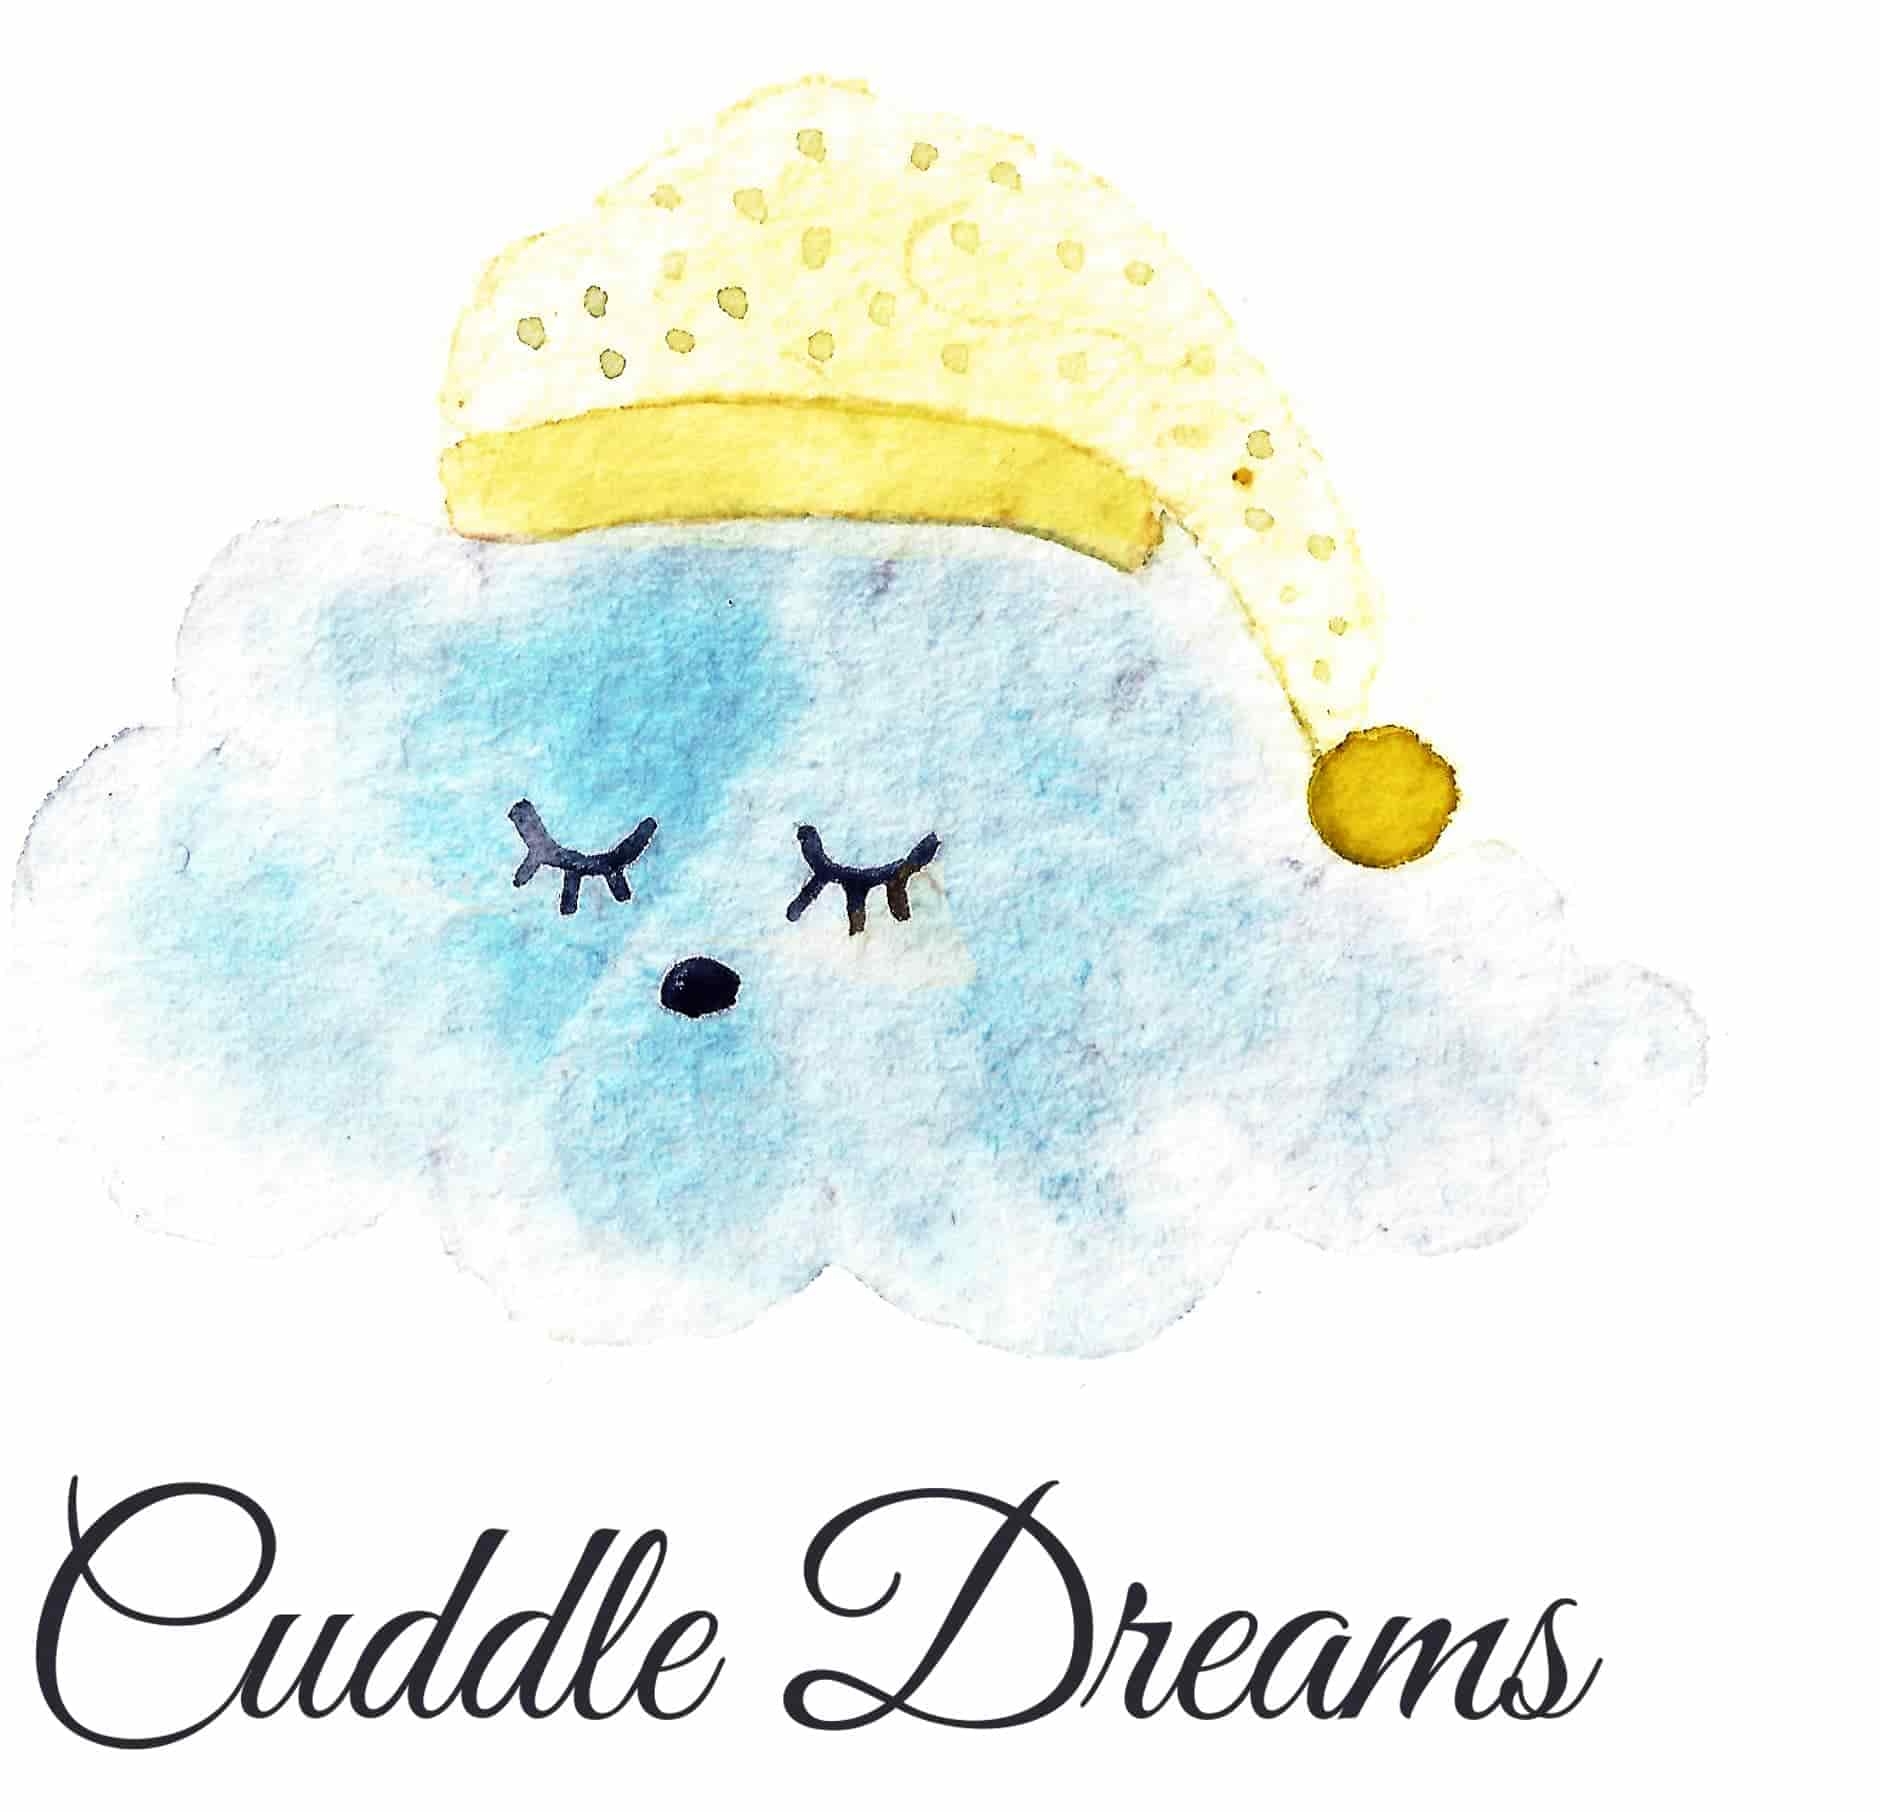 Cuddle Dreams